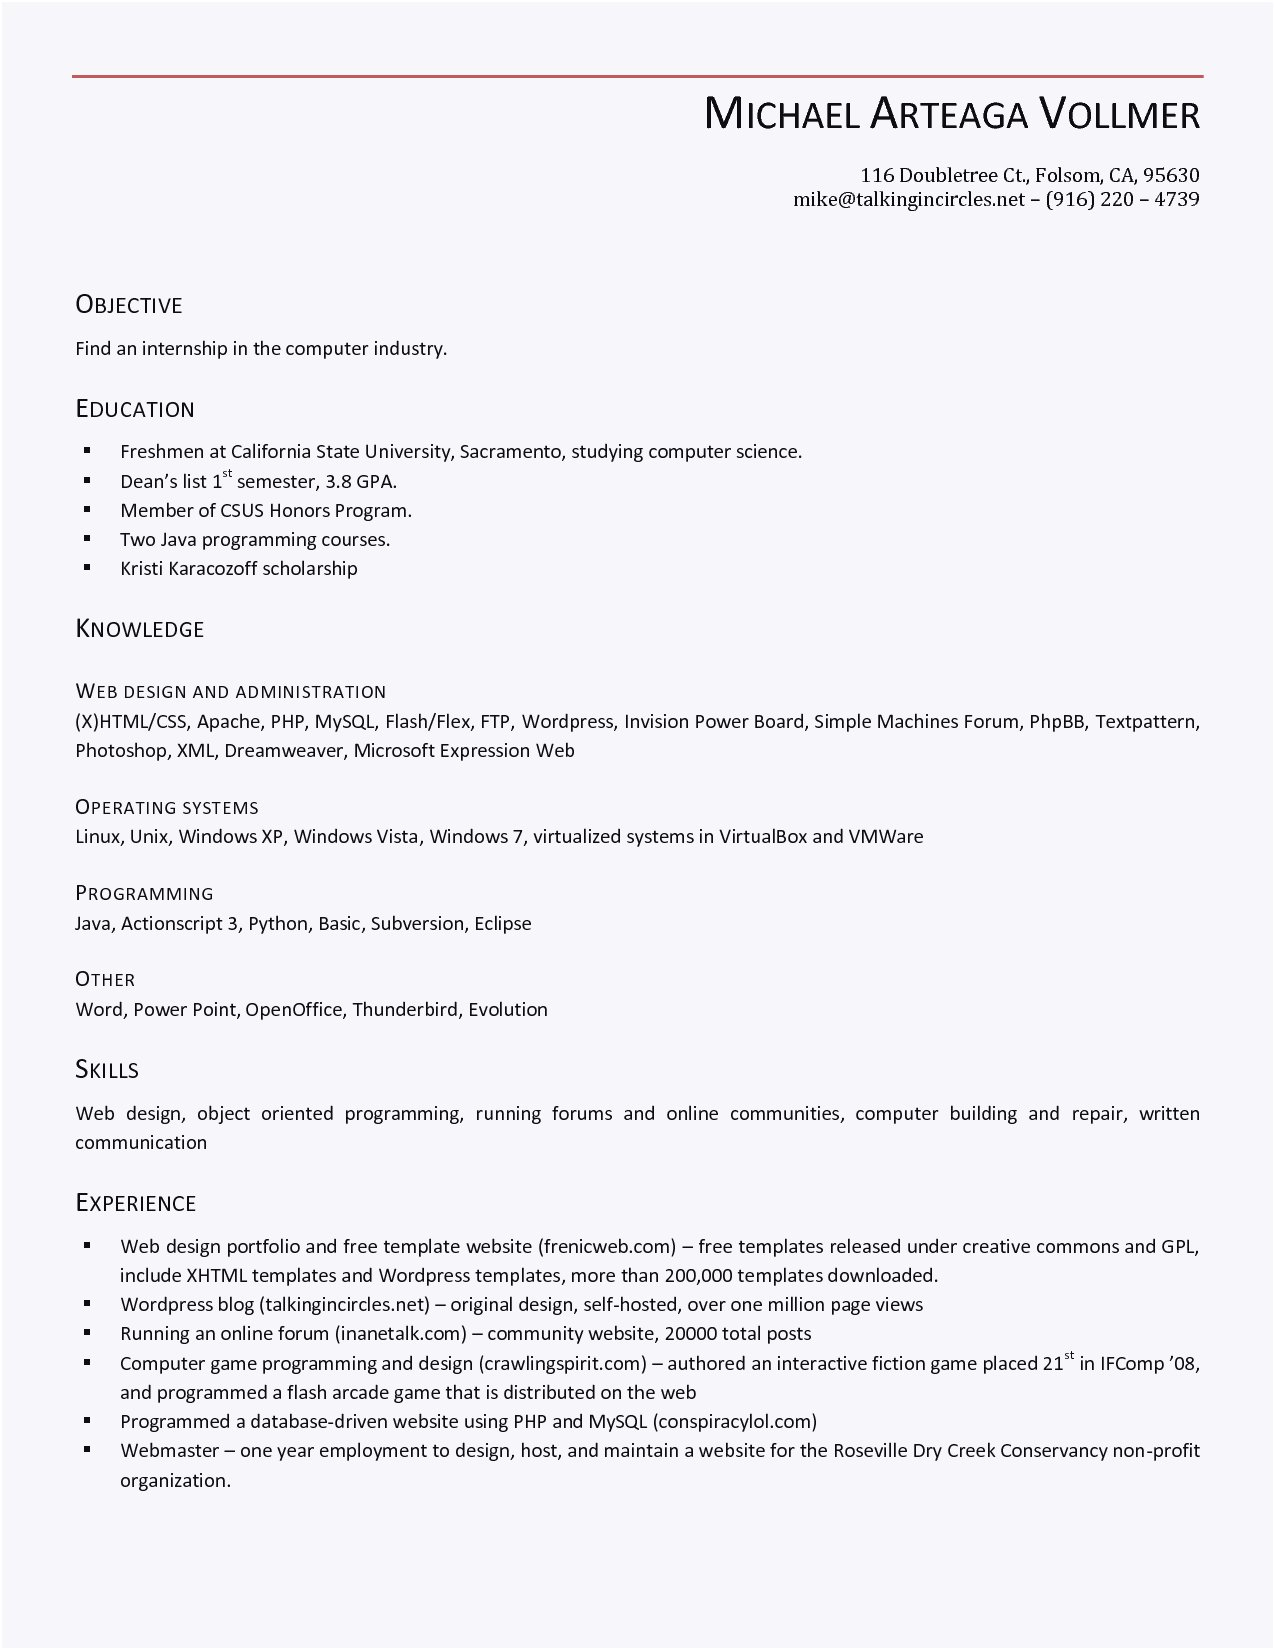 Resume Template Open Office Writer - Inspirierende Lebenslauf Vorlage Libreoffice